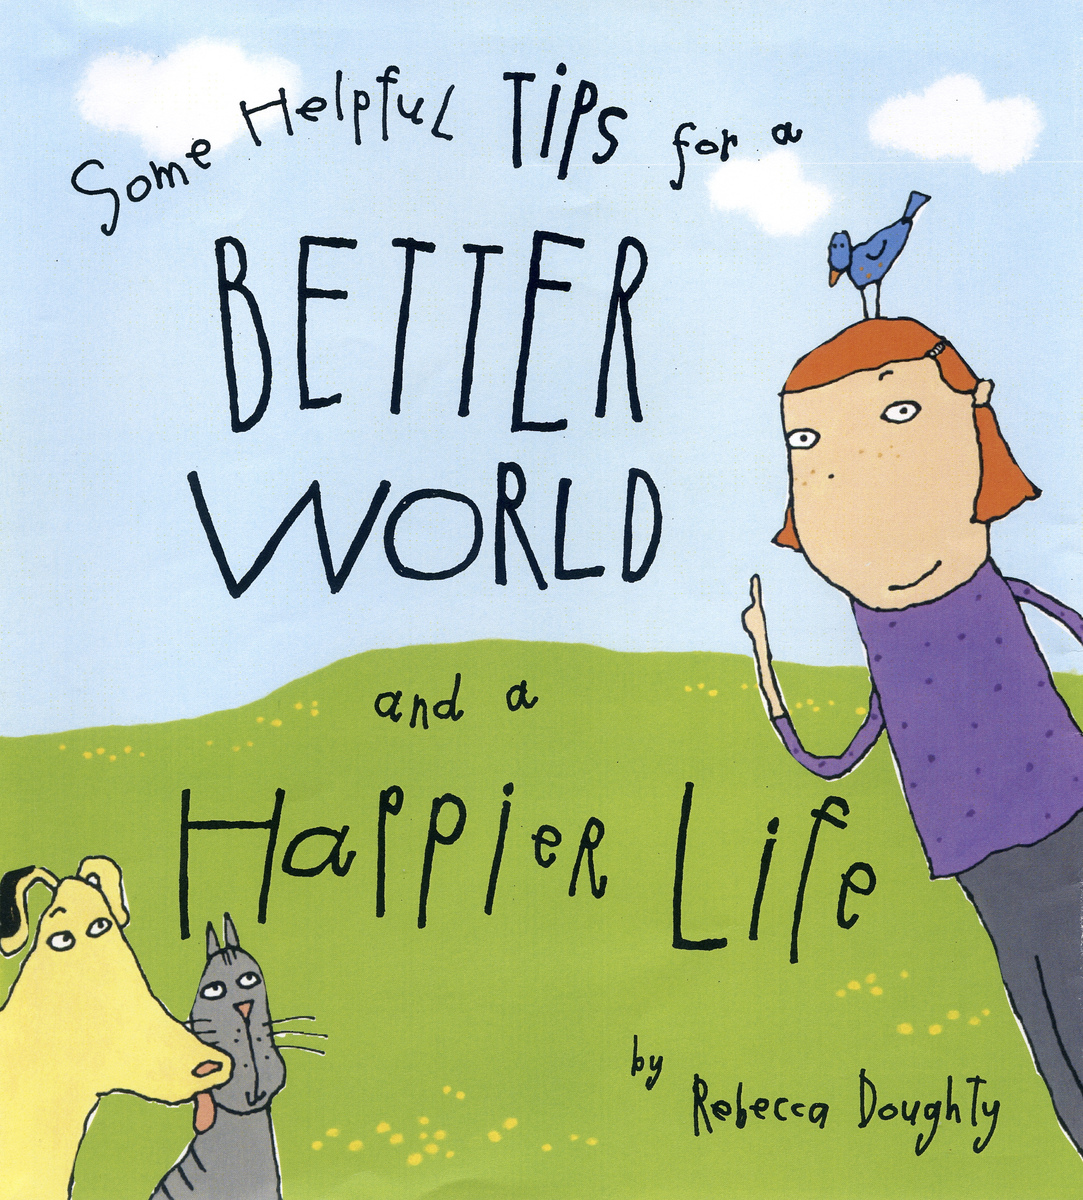 books Some Helpful Tips for a Better World and a Happier Life